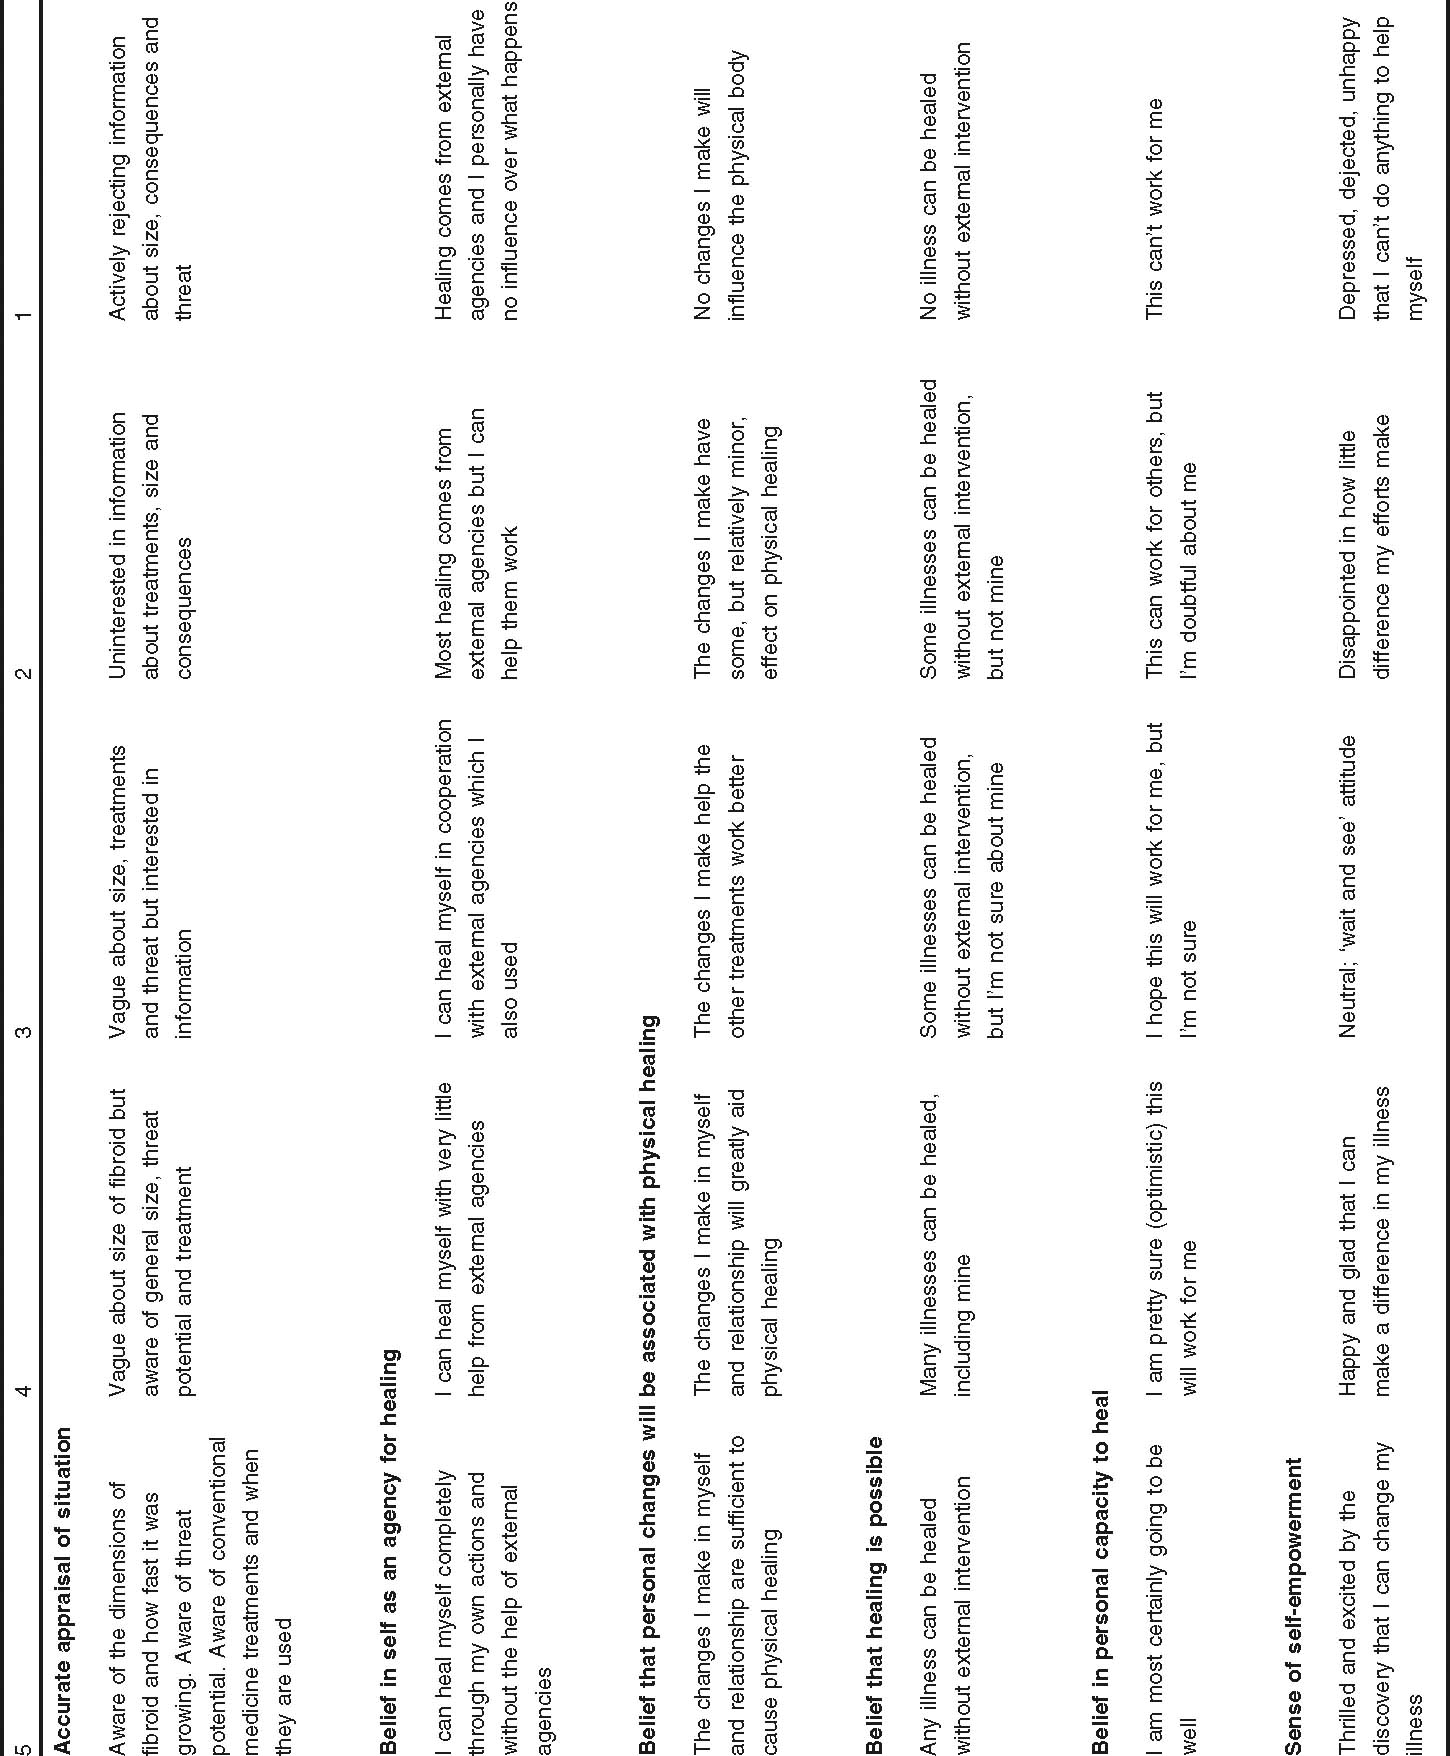 Factors Predicting Response to a Complementary Medicine Treatment